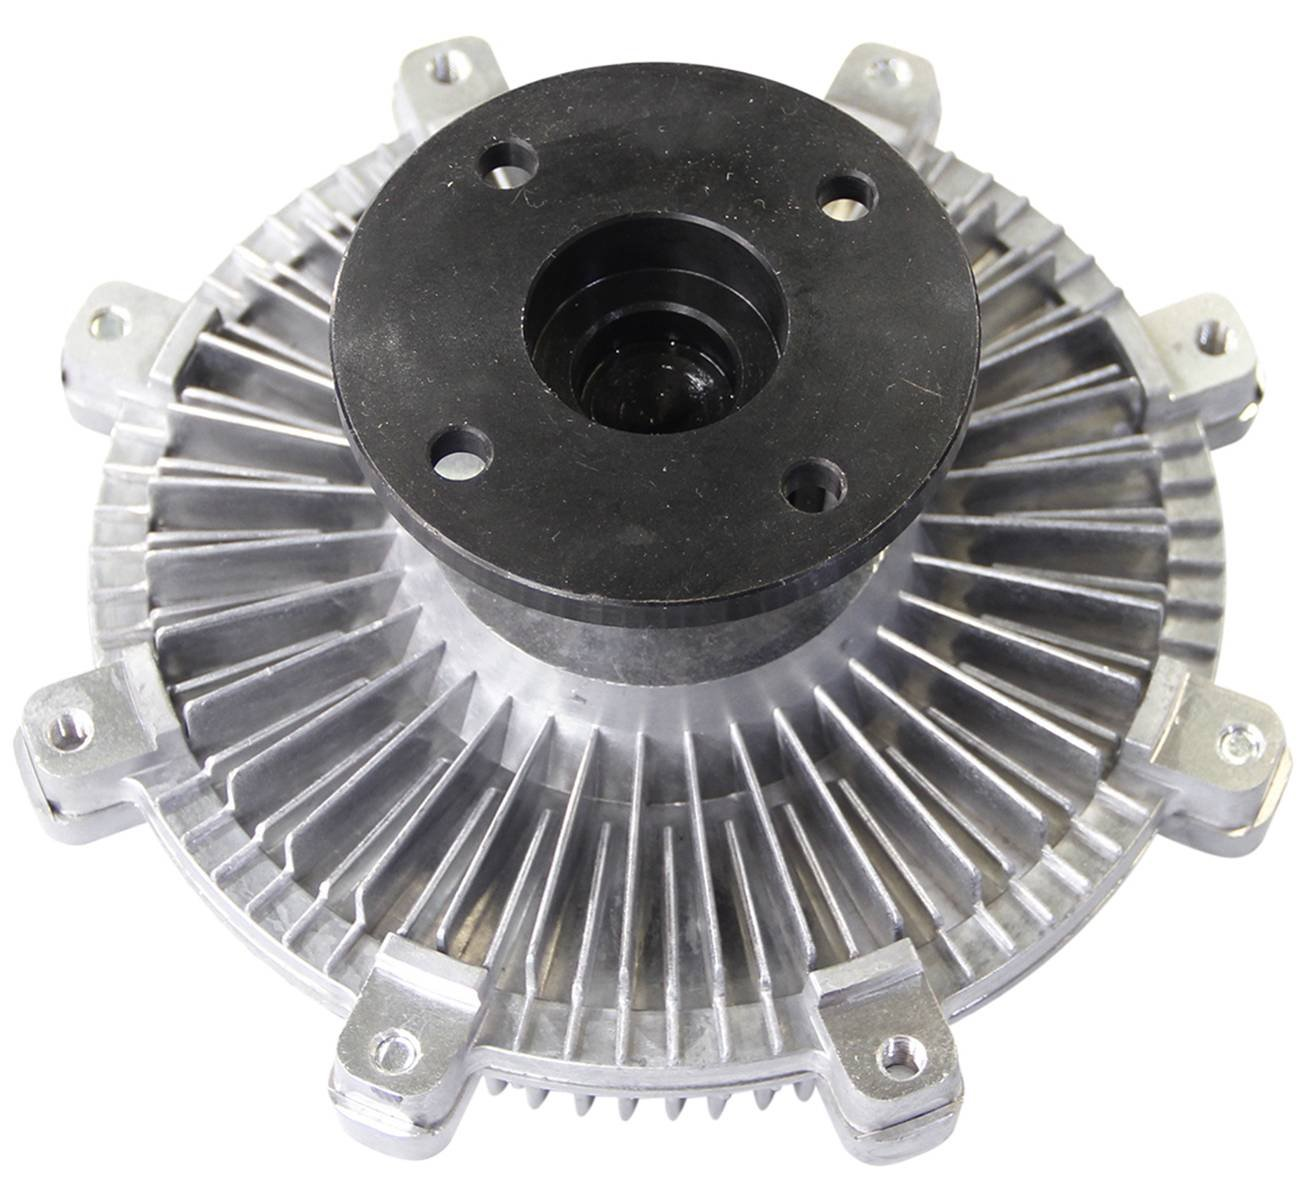 Amazon.com: TOPAZ 6601 Engine Cooling Thermal Fan Clutch for Nissan Frontier NV1500 NV2500 NV3500 Pathfinder Xterra 4.0L V6: Automotive